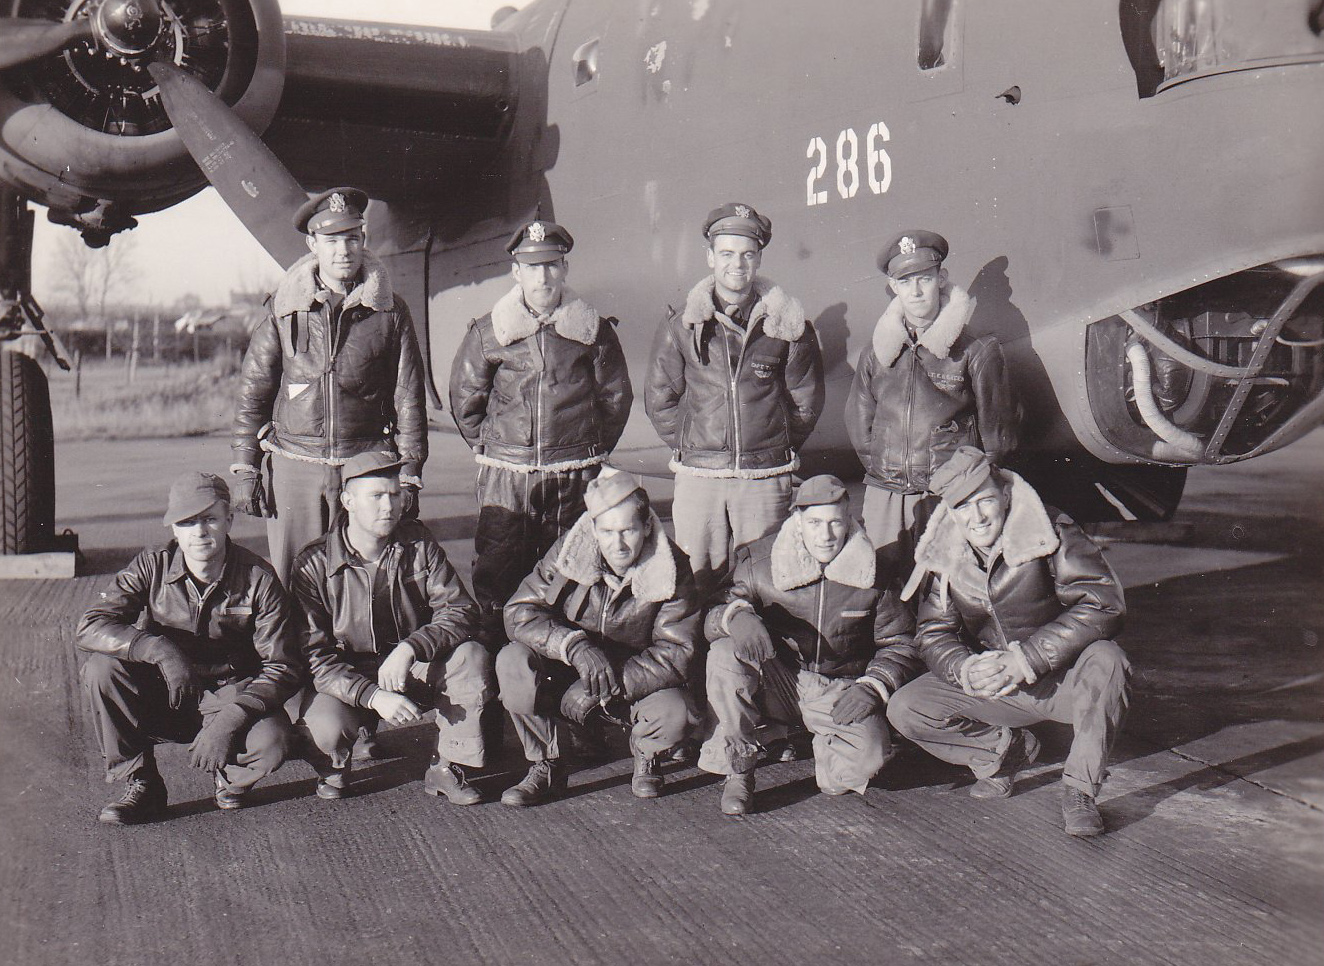 Air Force pilots posing for the camera under the wing of a bomber plane